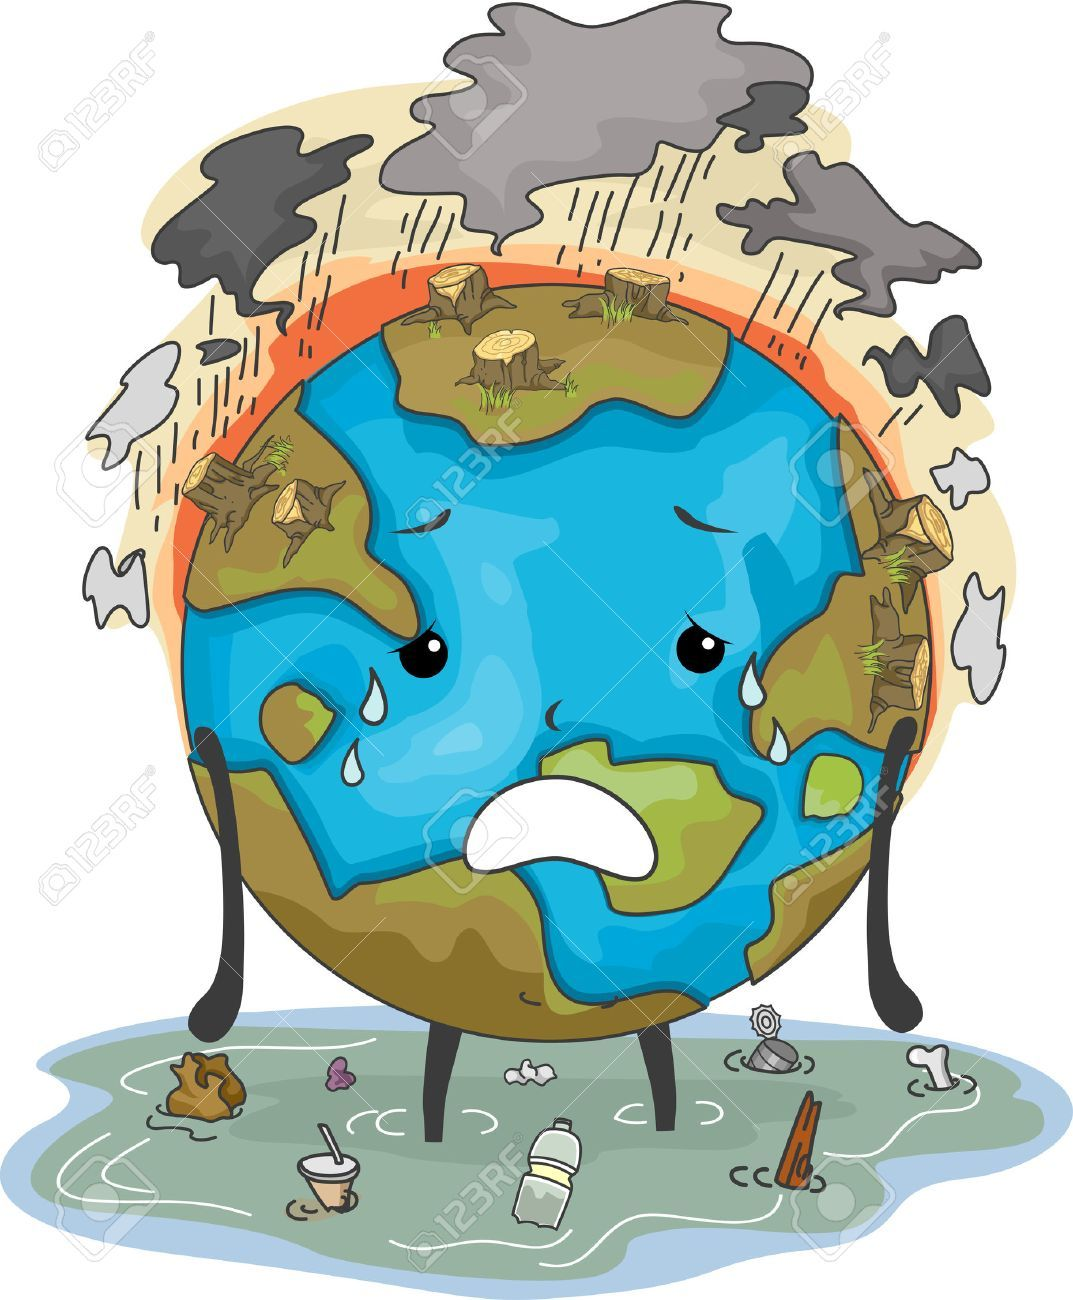 Earth pollution clipart 9 » Clipart Portal.